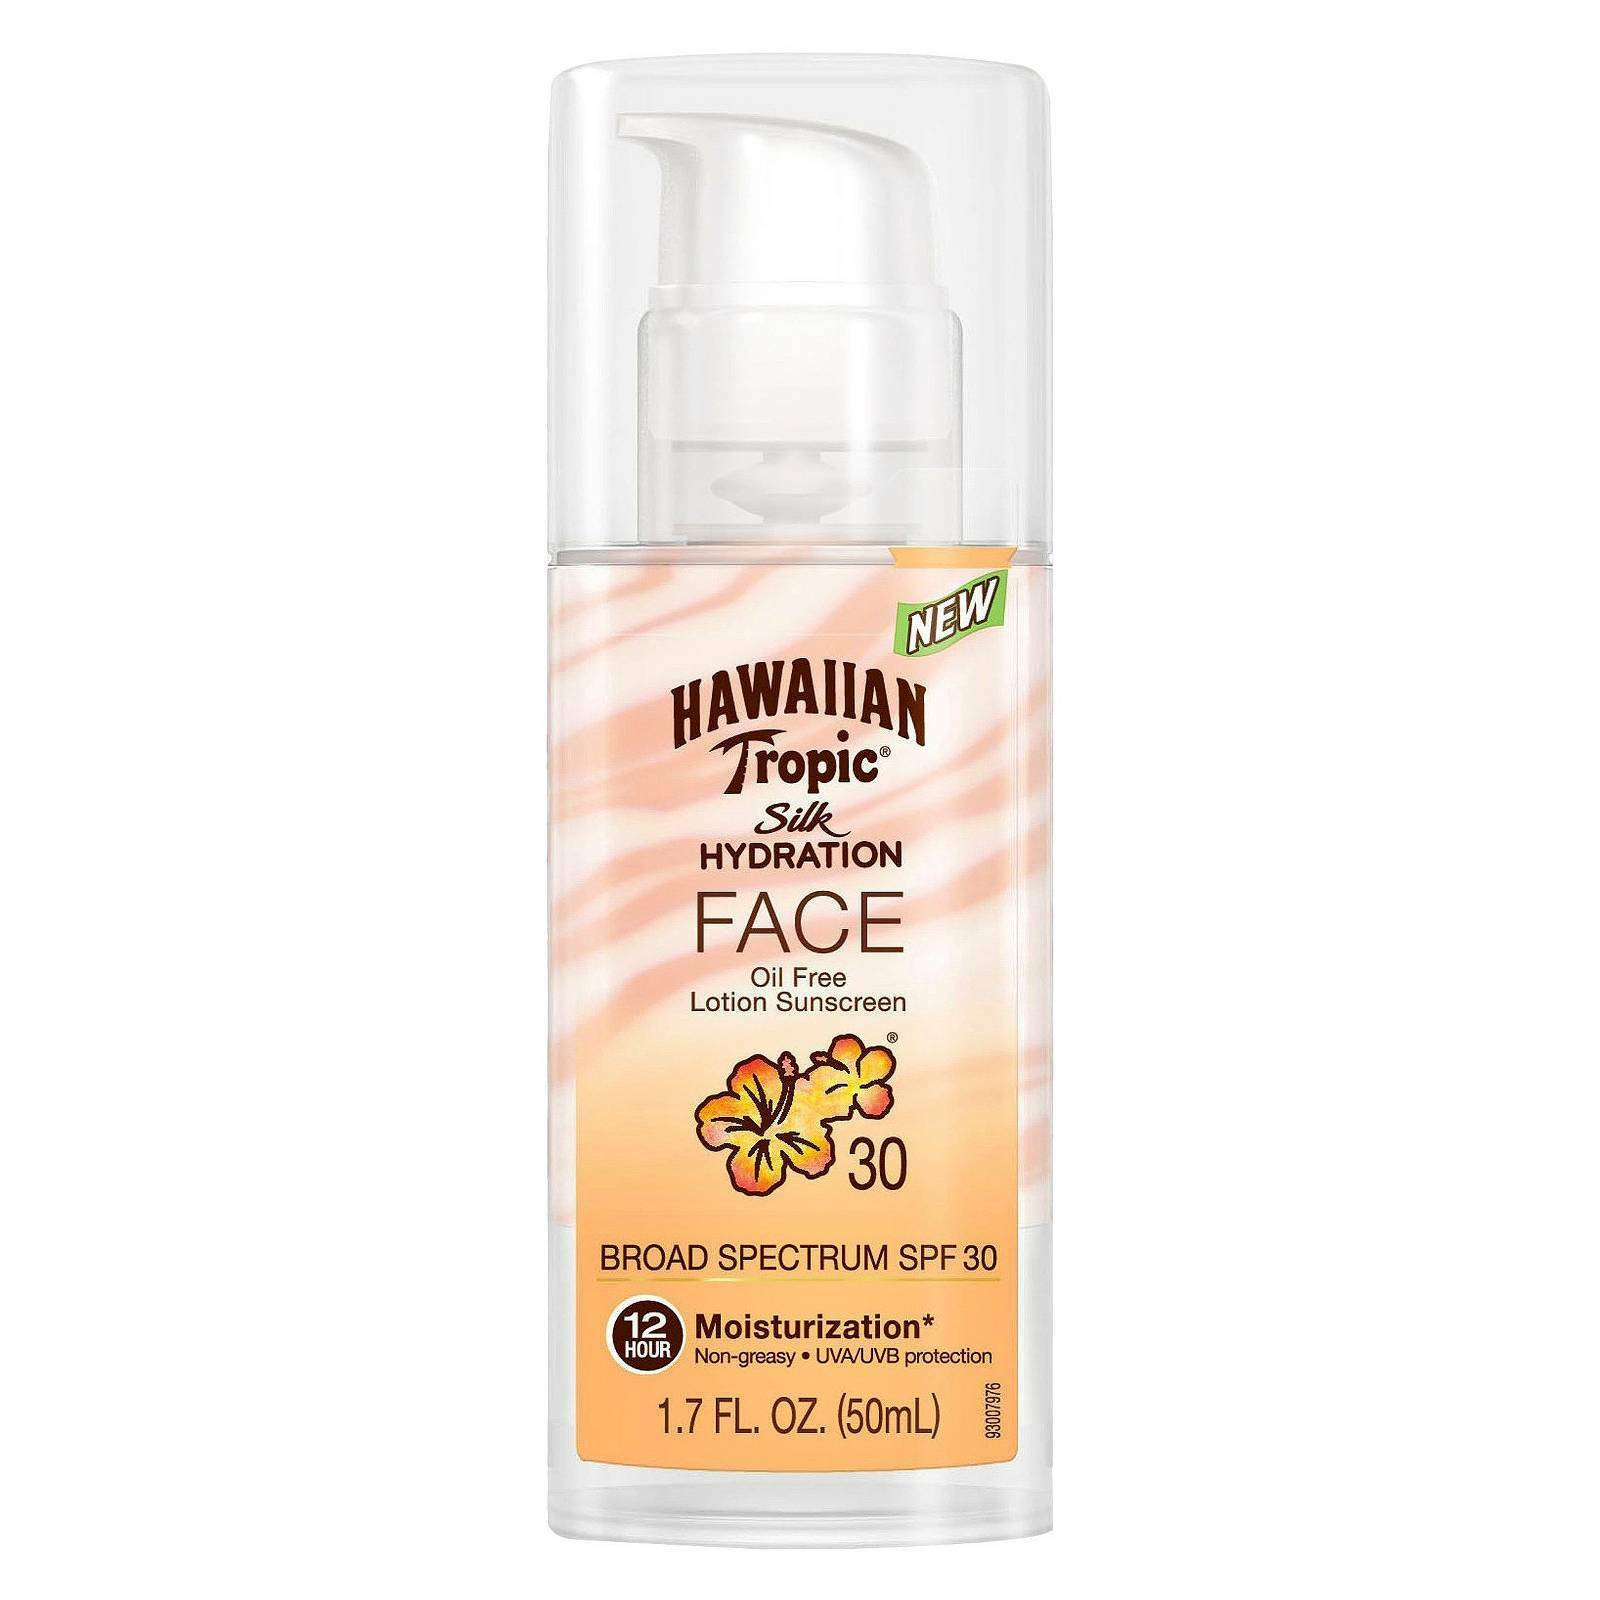 Hawaiian Tropic Sunblock Oil Free Faces SPF 30 4 fl oz (118 ml) Age Defying Hyaluronic Acid Serum with Vitamins C & E, Professional Grade by Pure Body Naturals, 1 Fluid Ounce